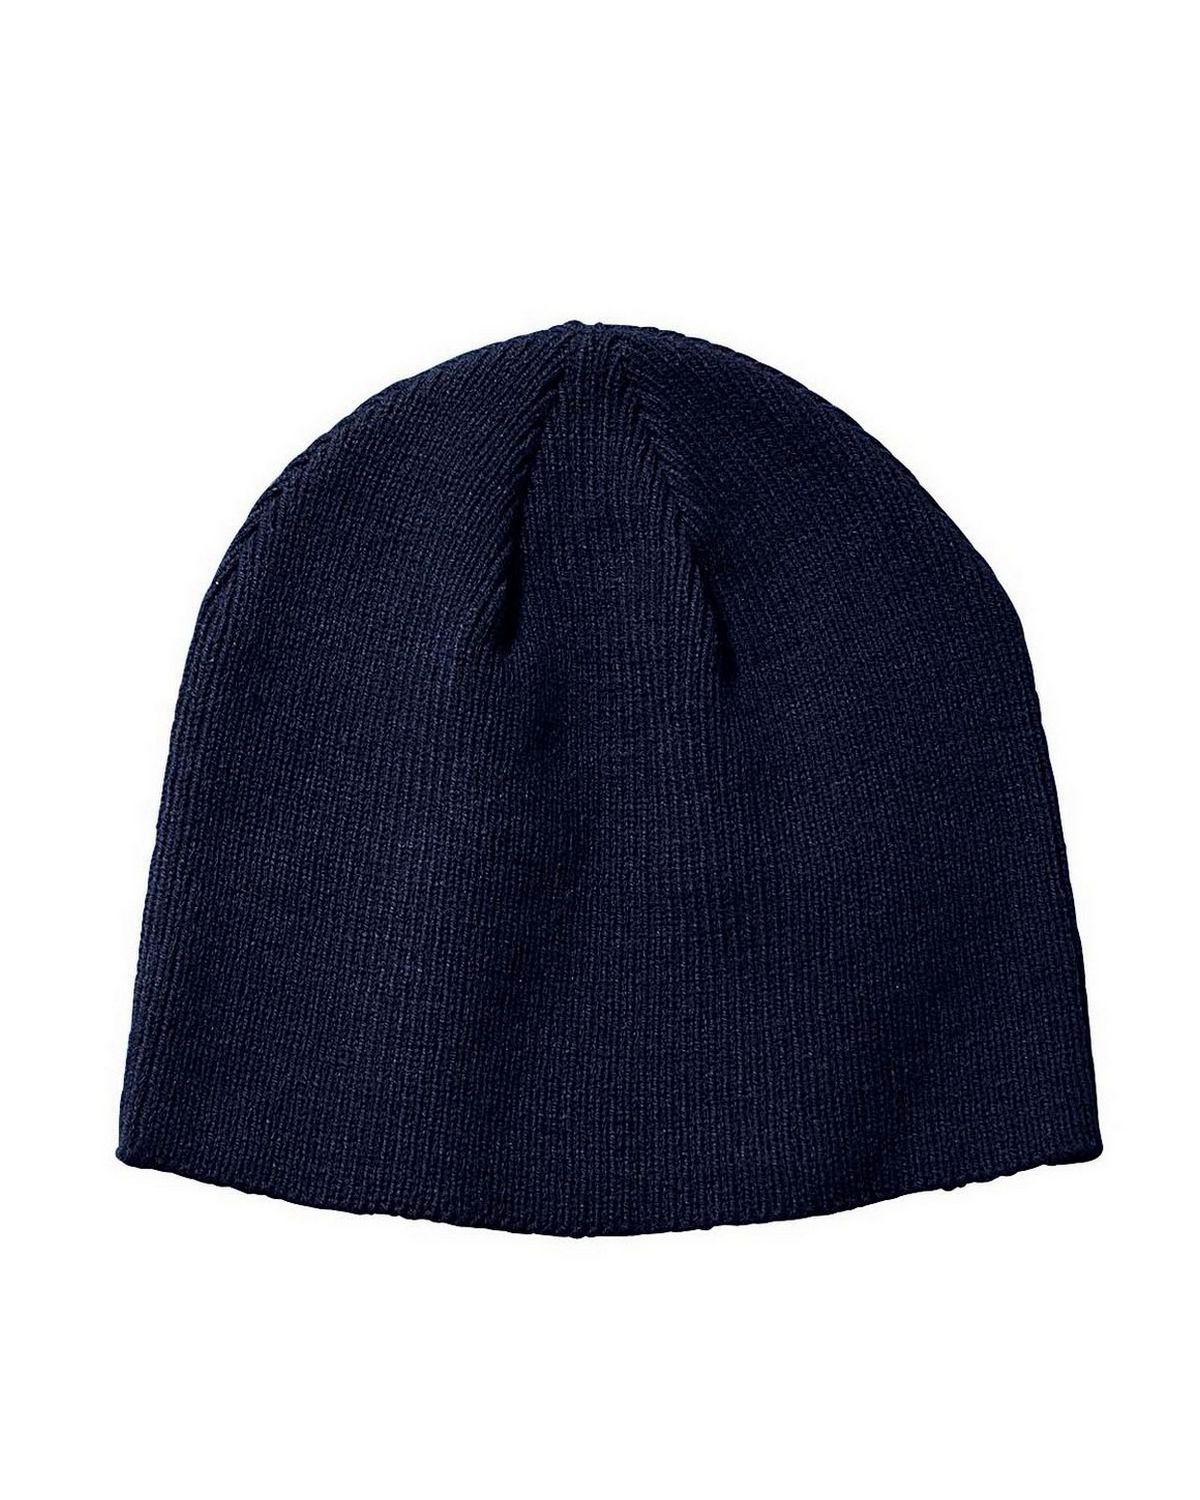 Big Accessories BX026 Knit Beanie - Navy - One Size BX026